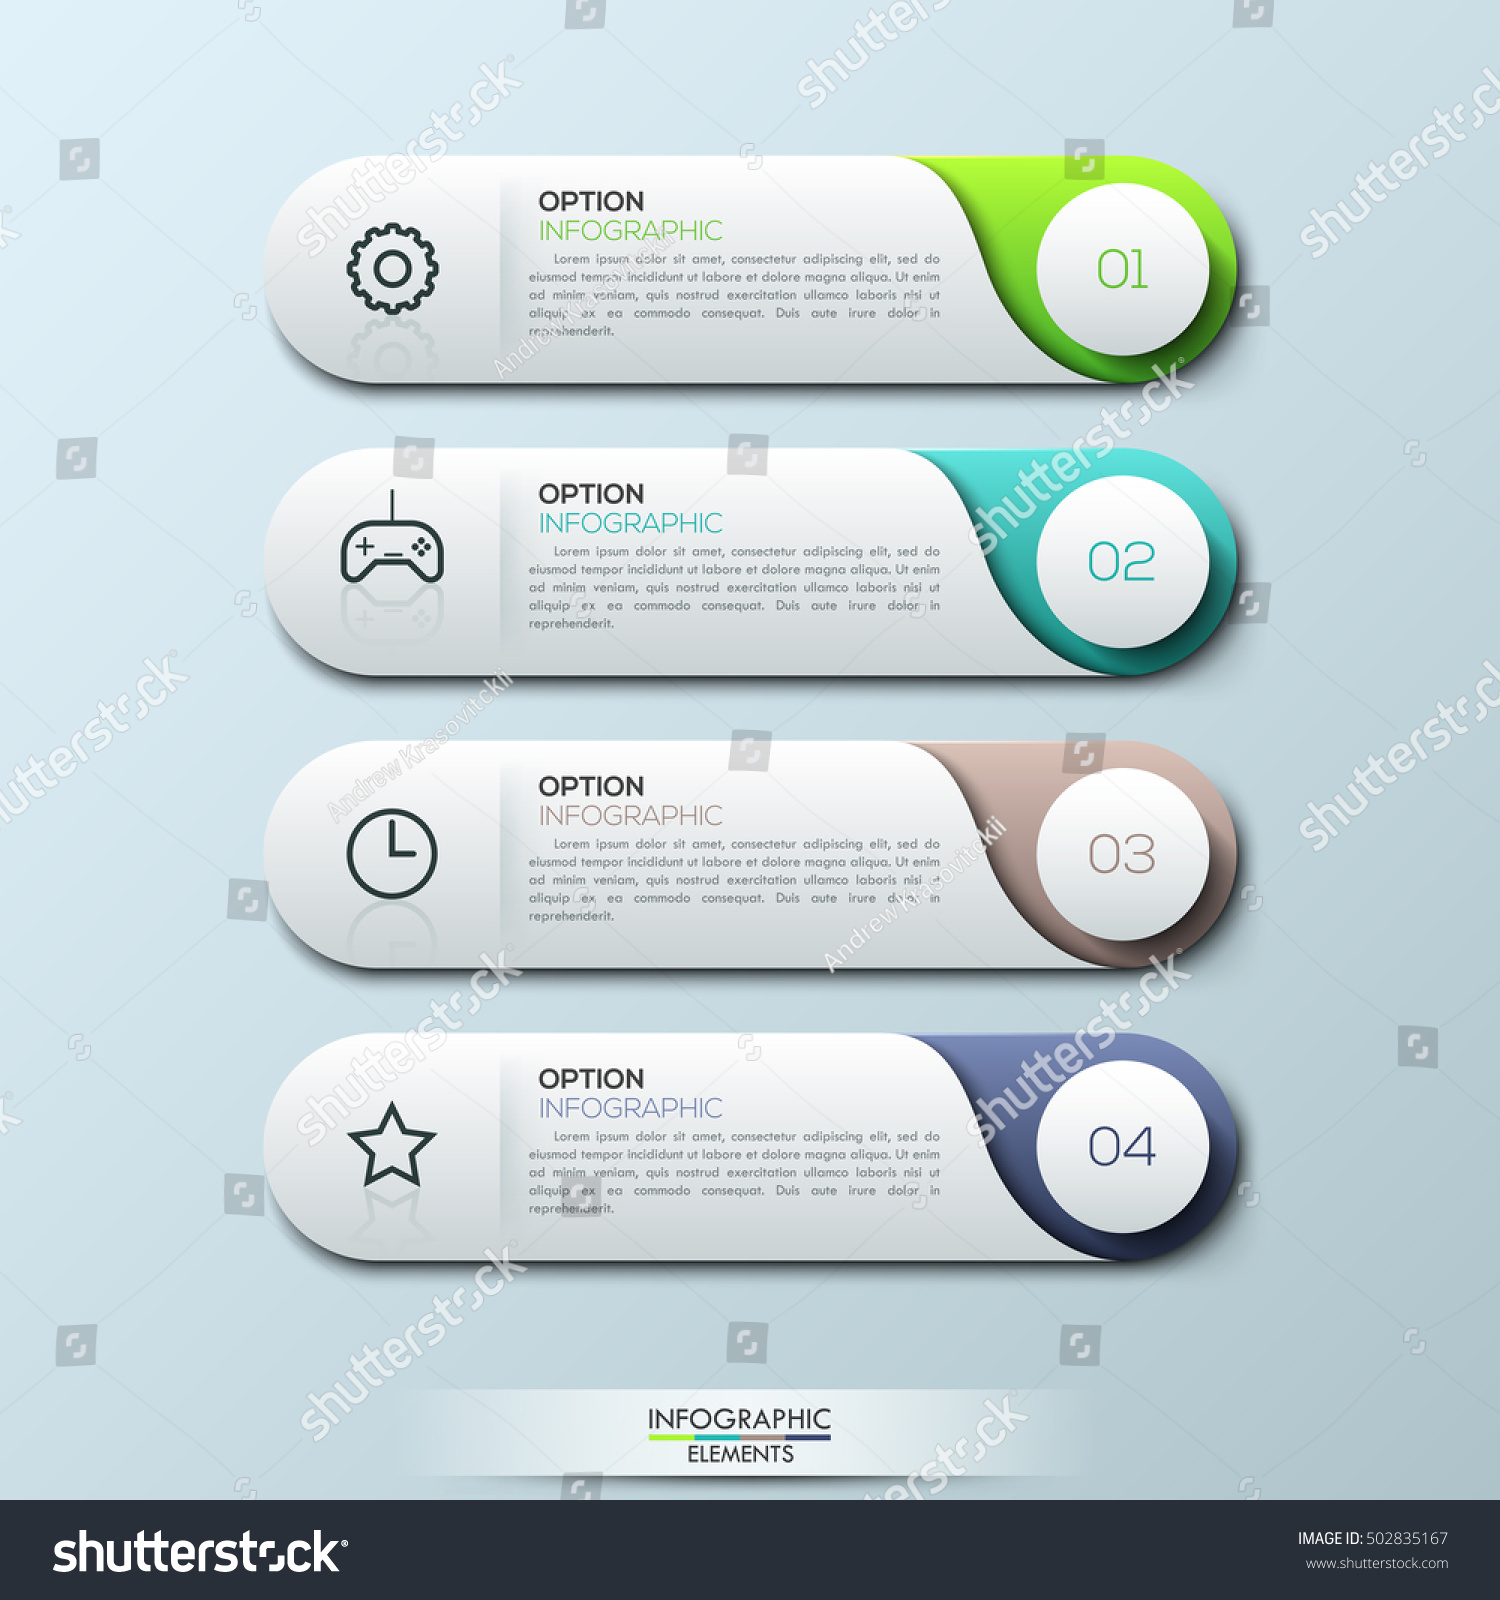 Infographic Design Template With 4 Separate Numbered Rounded Rectangles.  Game Setup User Manual. Gaming  Product Manual Template